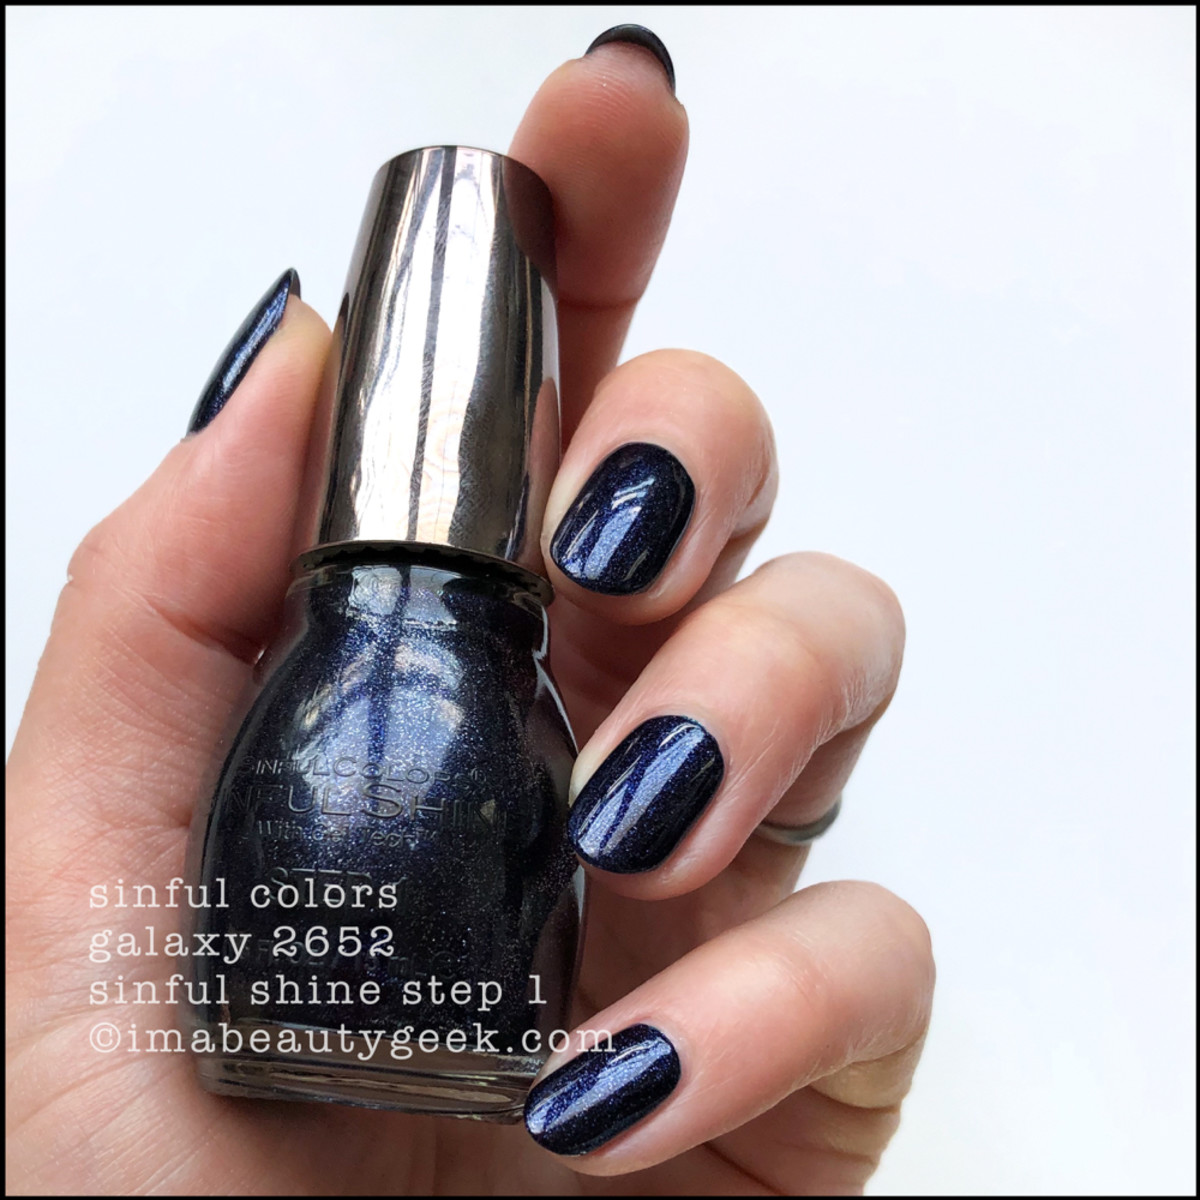 Sinful Colors Galaxy - Sinful Colors Swatches Sinful Shine 2019